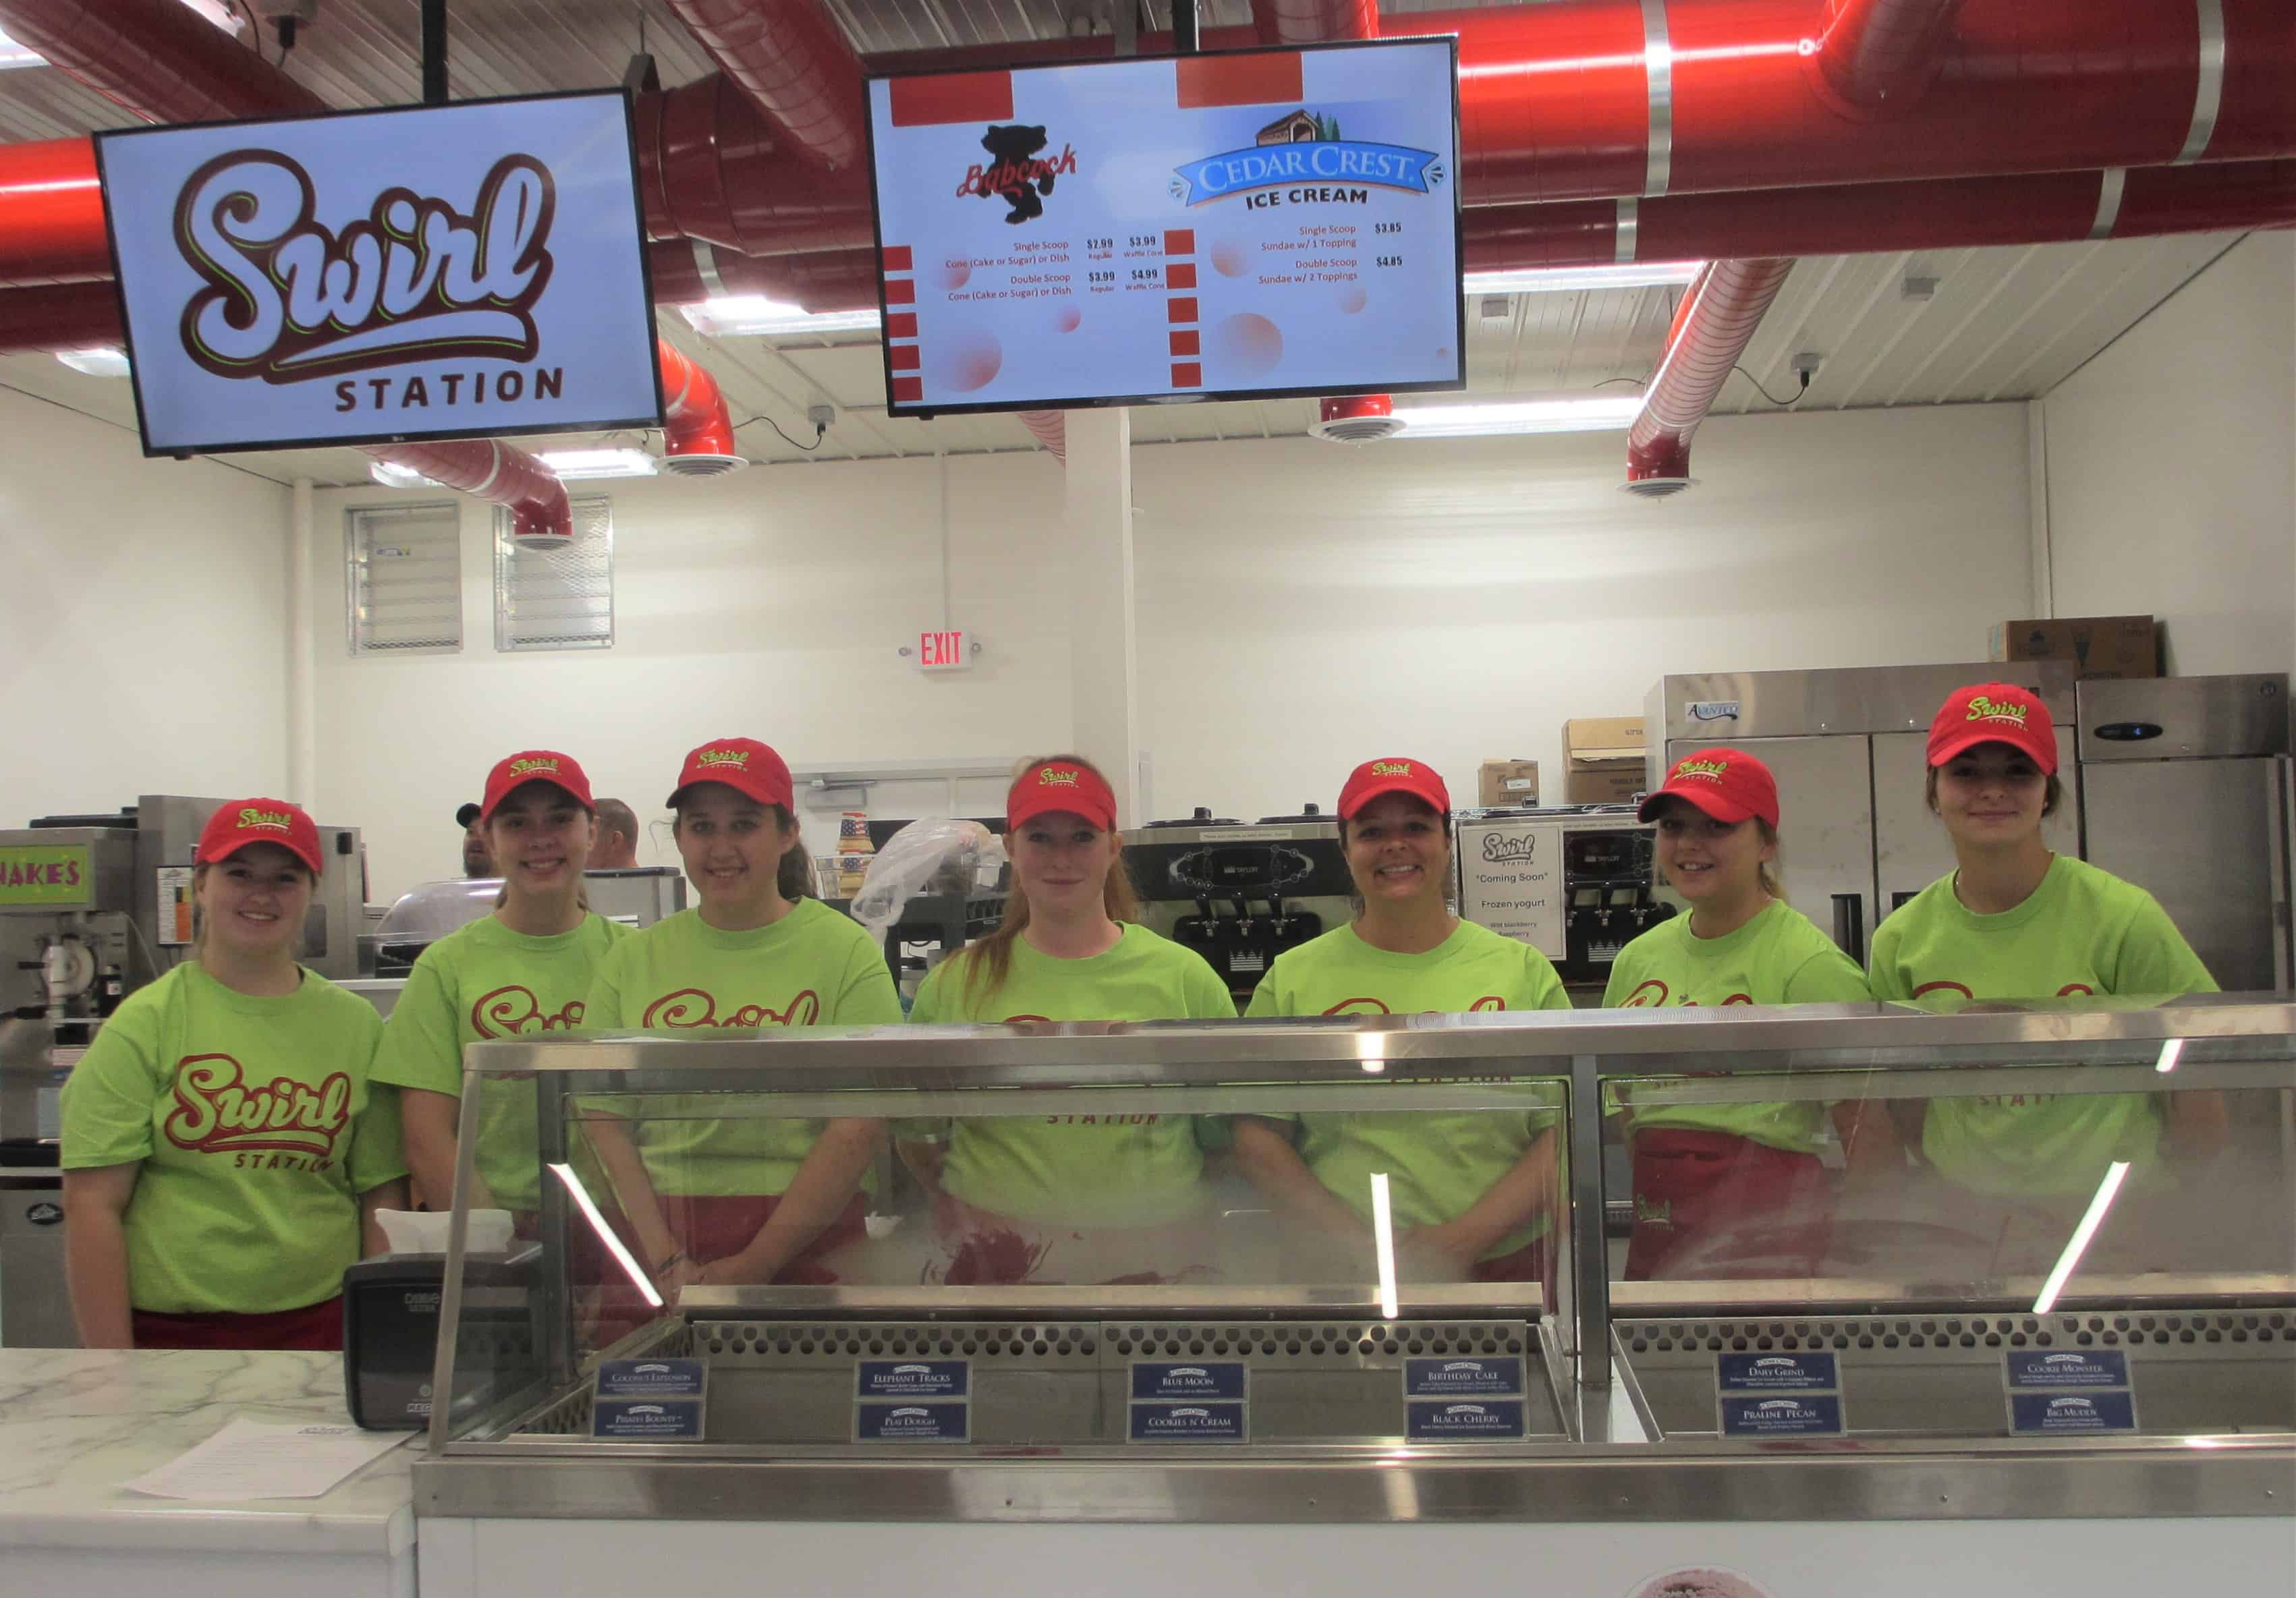 Our whole crew is ready to make your day special.